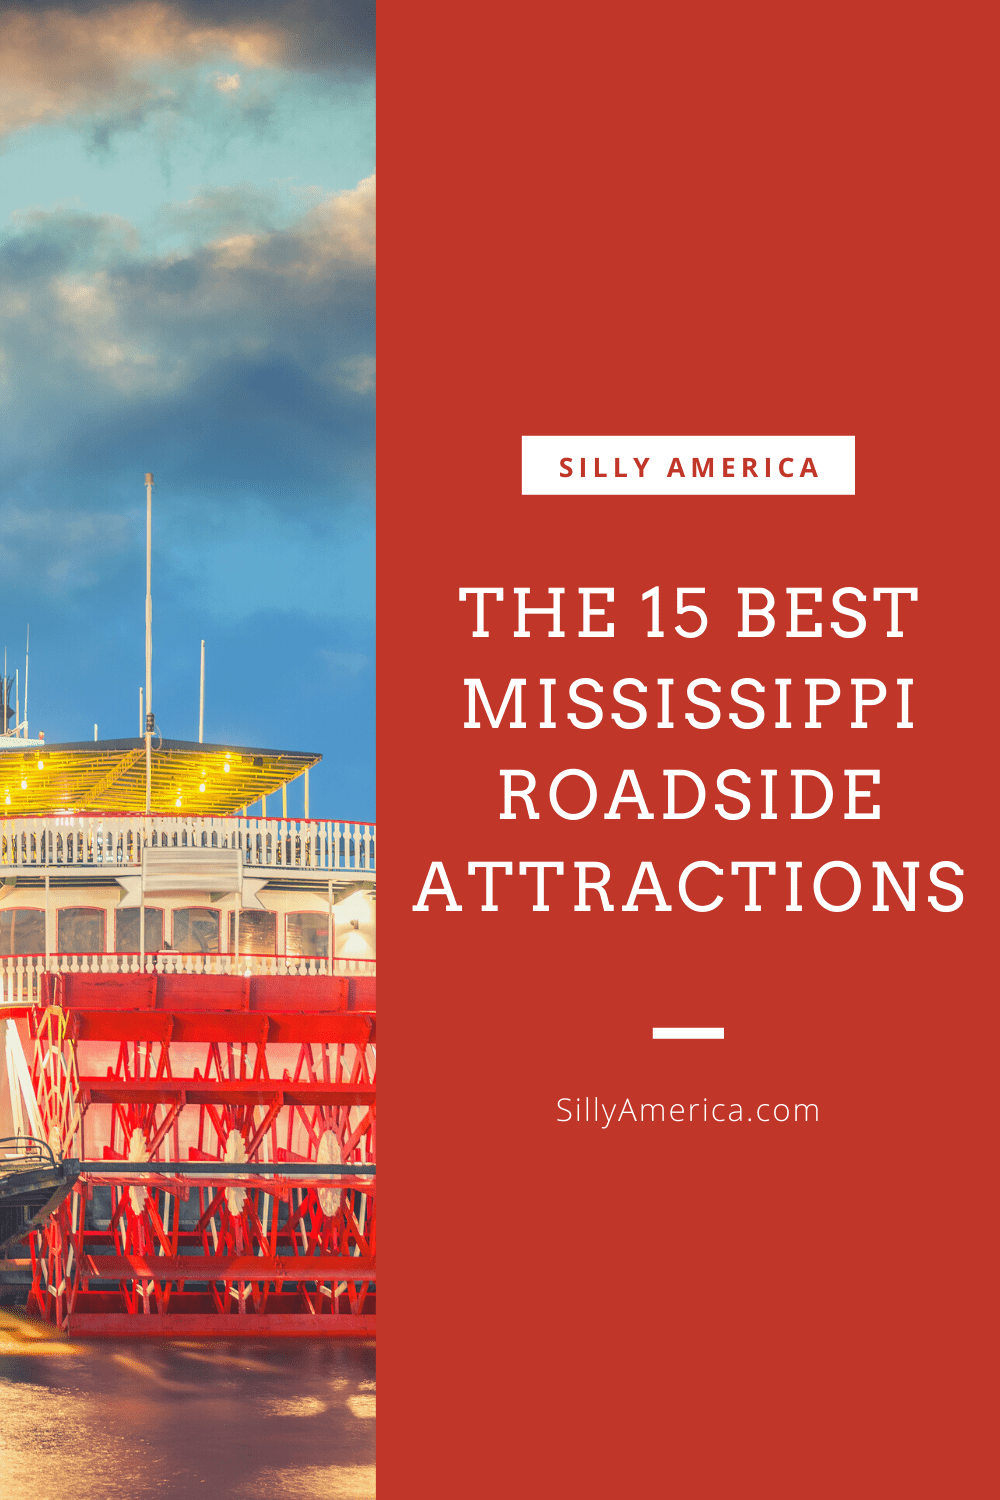 The best Mississippi roadside attractions to visit on a Mississippi road trip. Add these roadside oddities to your travel bucket list, itinerary, or map! Weird roadside attractions and road trip stops for kids and adults on the Great River Road and beyond. #MississippiRoadsideAttractions #MississippiRoadsideAttraction #RoadsideAttractions #RoadsideAttraction #RoadTrip #MississippiRoadTrip #MississippiRoadTripBucketLists #MississippiBucketList #MississippiRiverRoadTrip #MississippiTravel